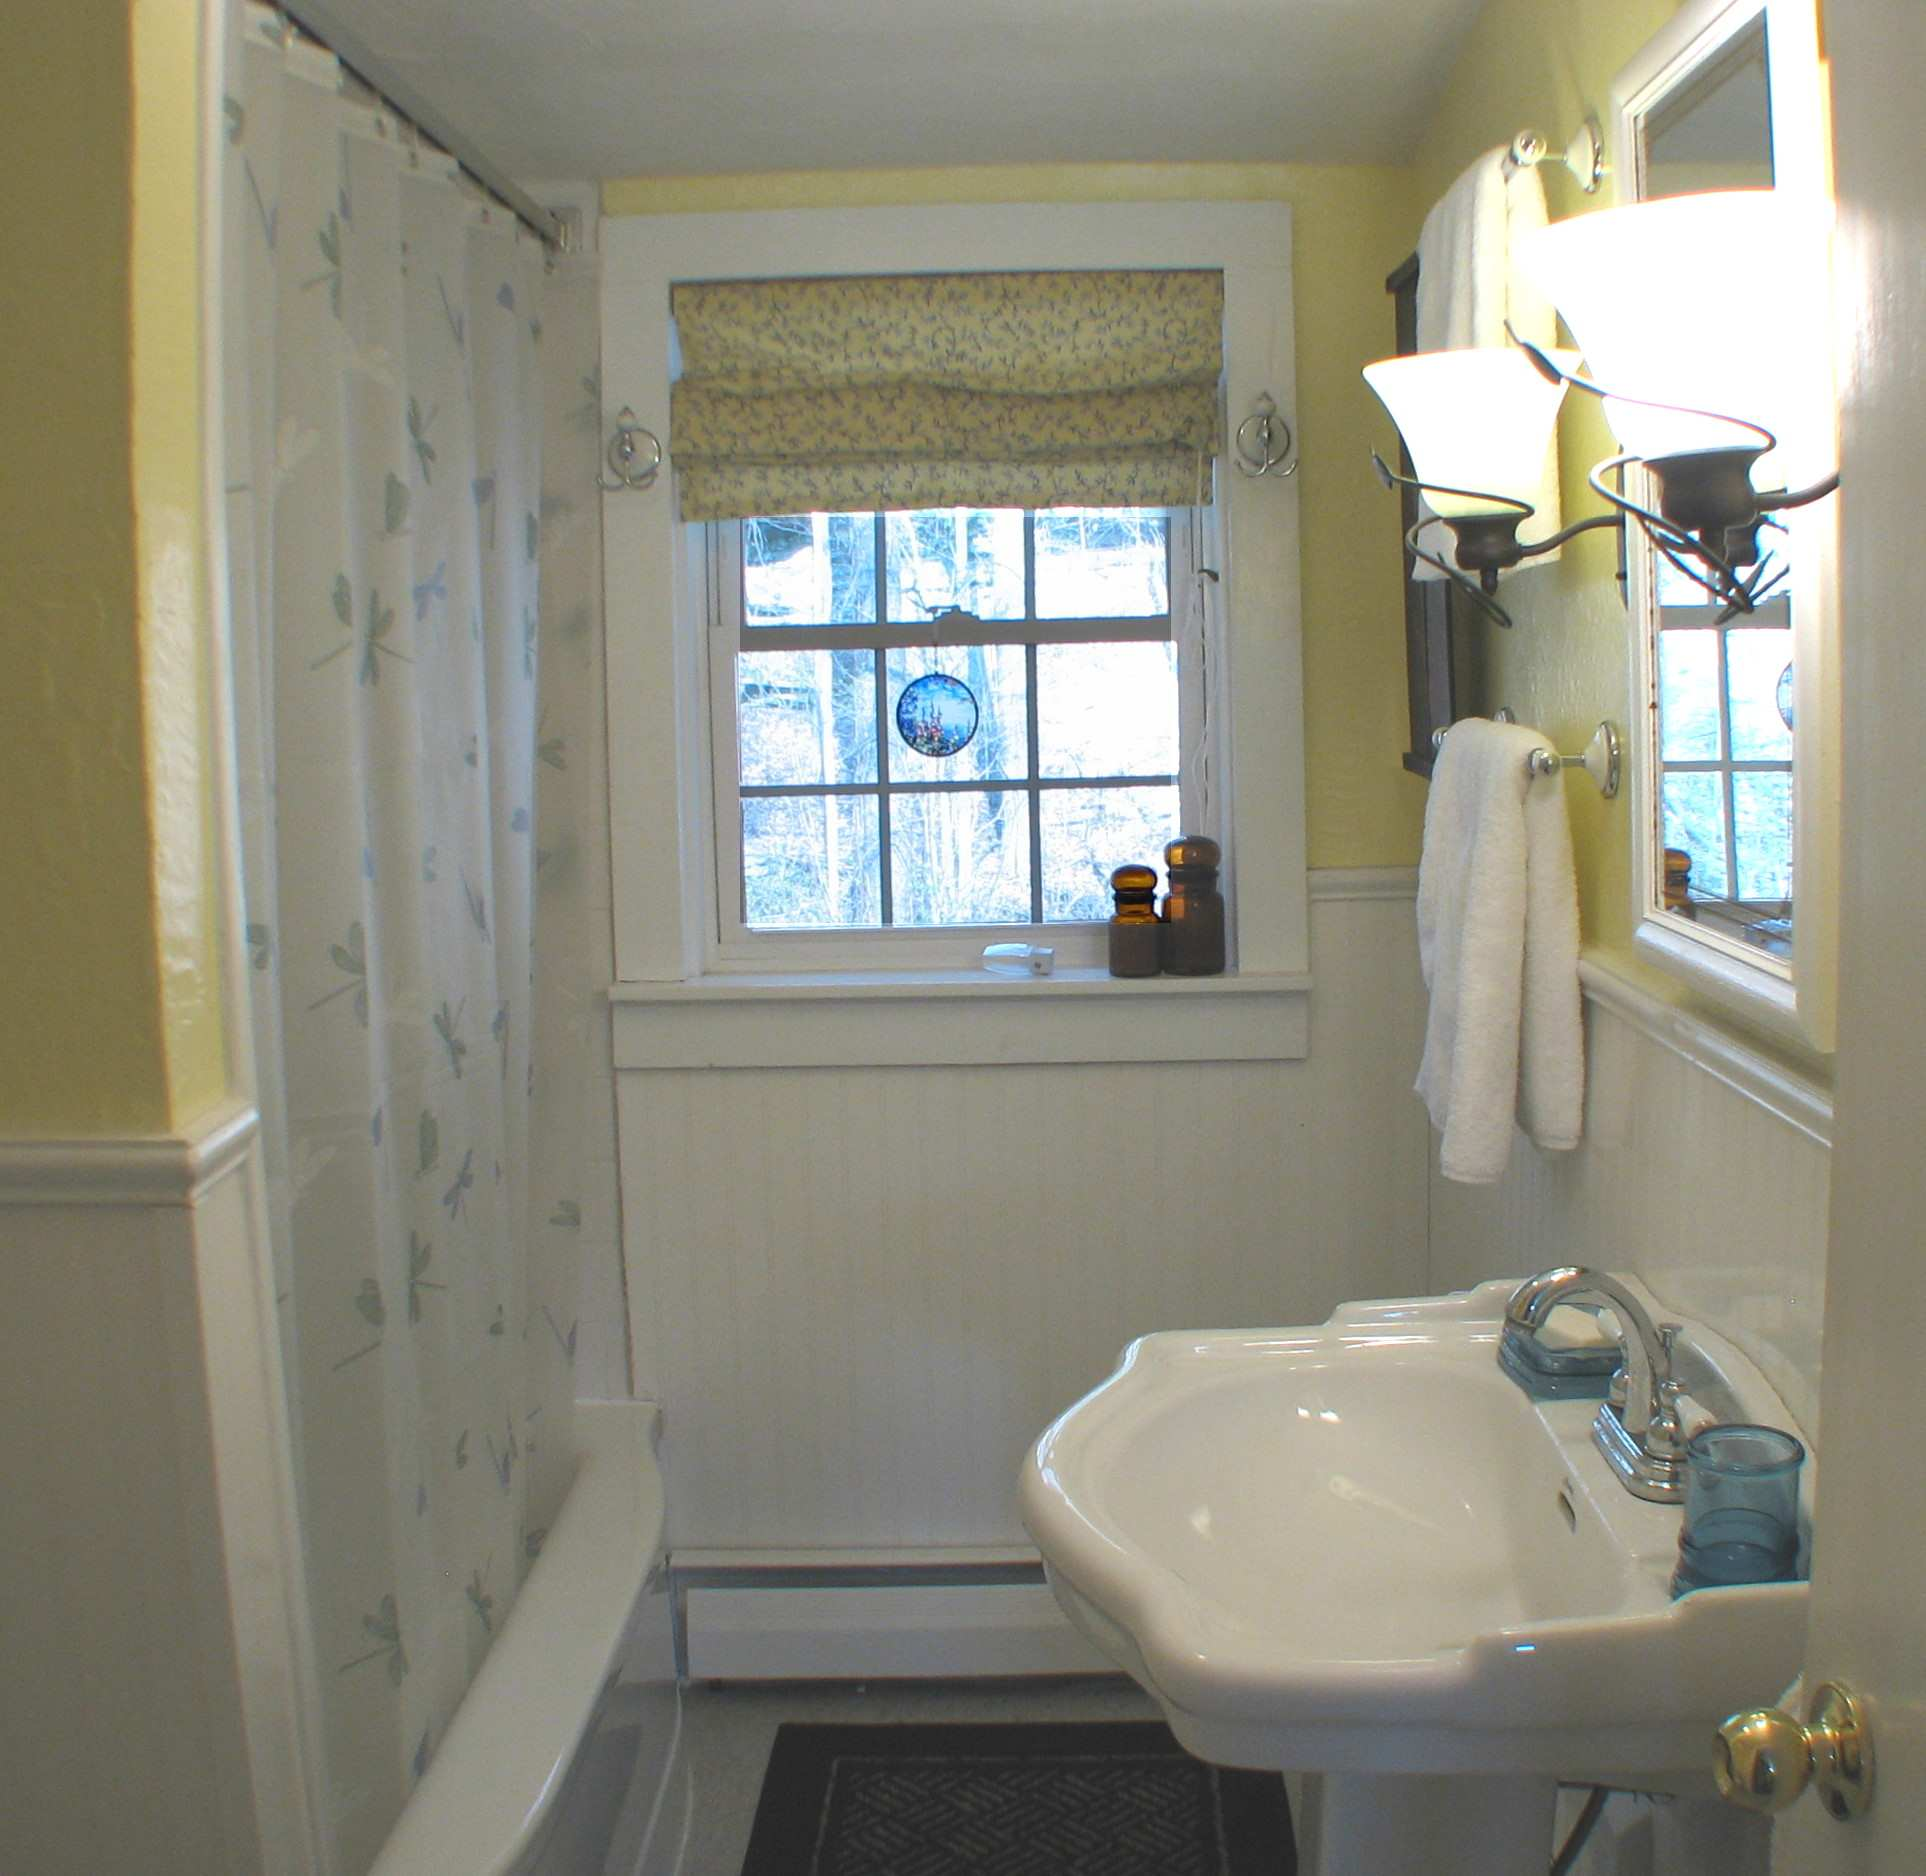 Full bathroom with tub shower and sink